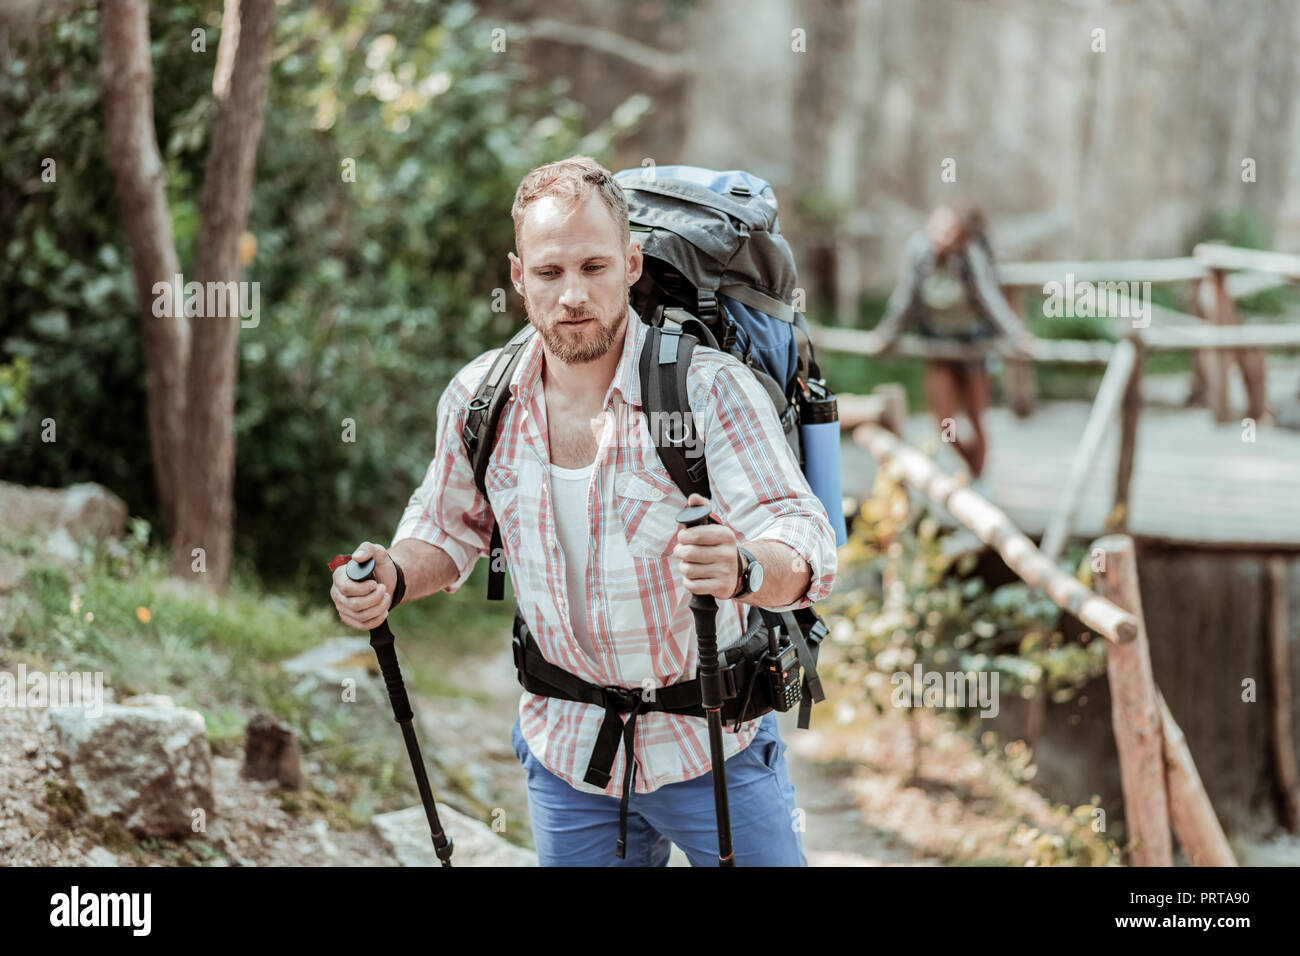 Handsome bearded blonde-haired man enjoying his weekend with walking poles Stock Photo